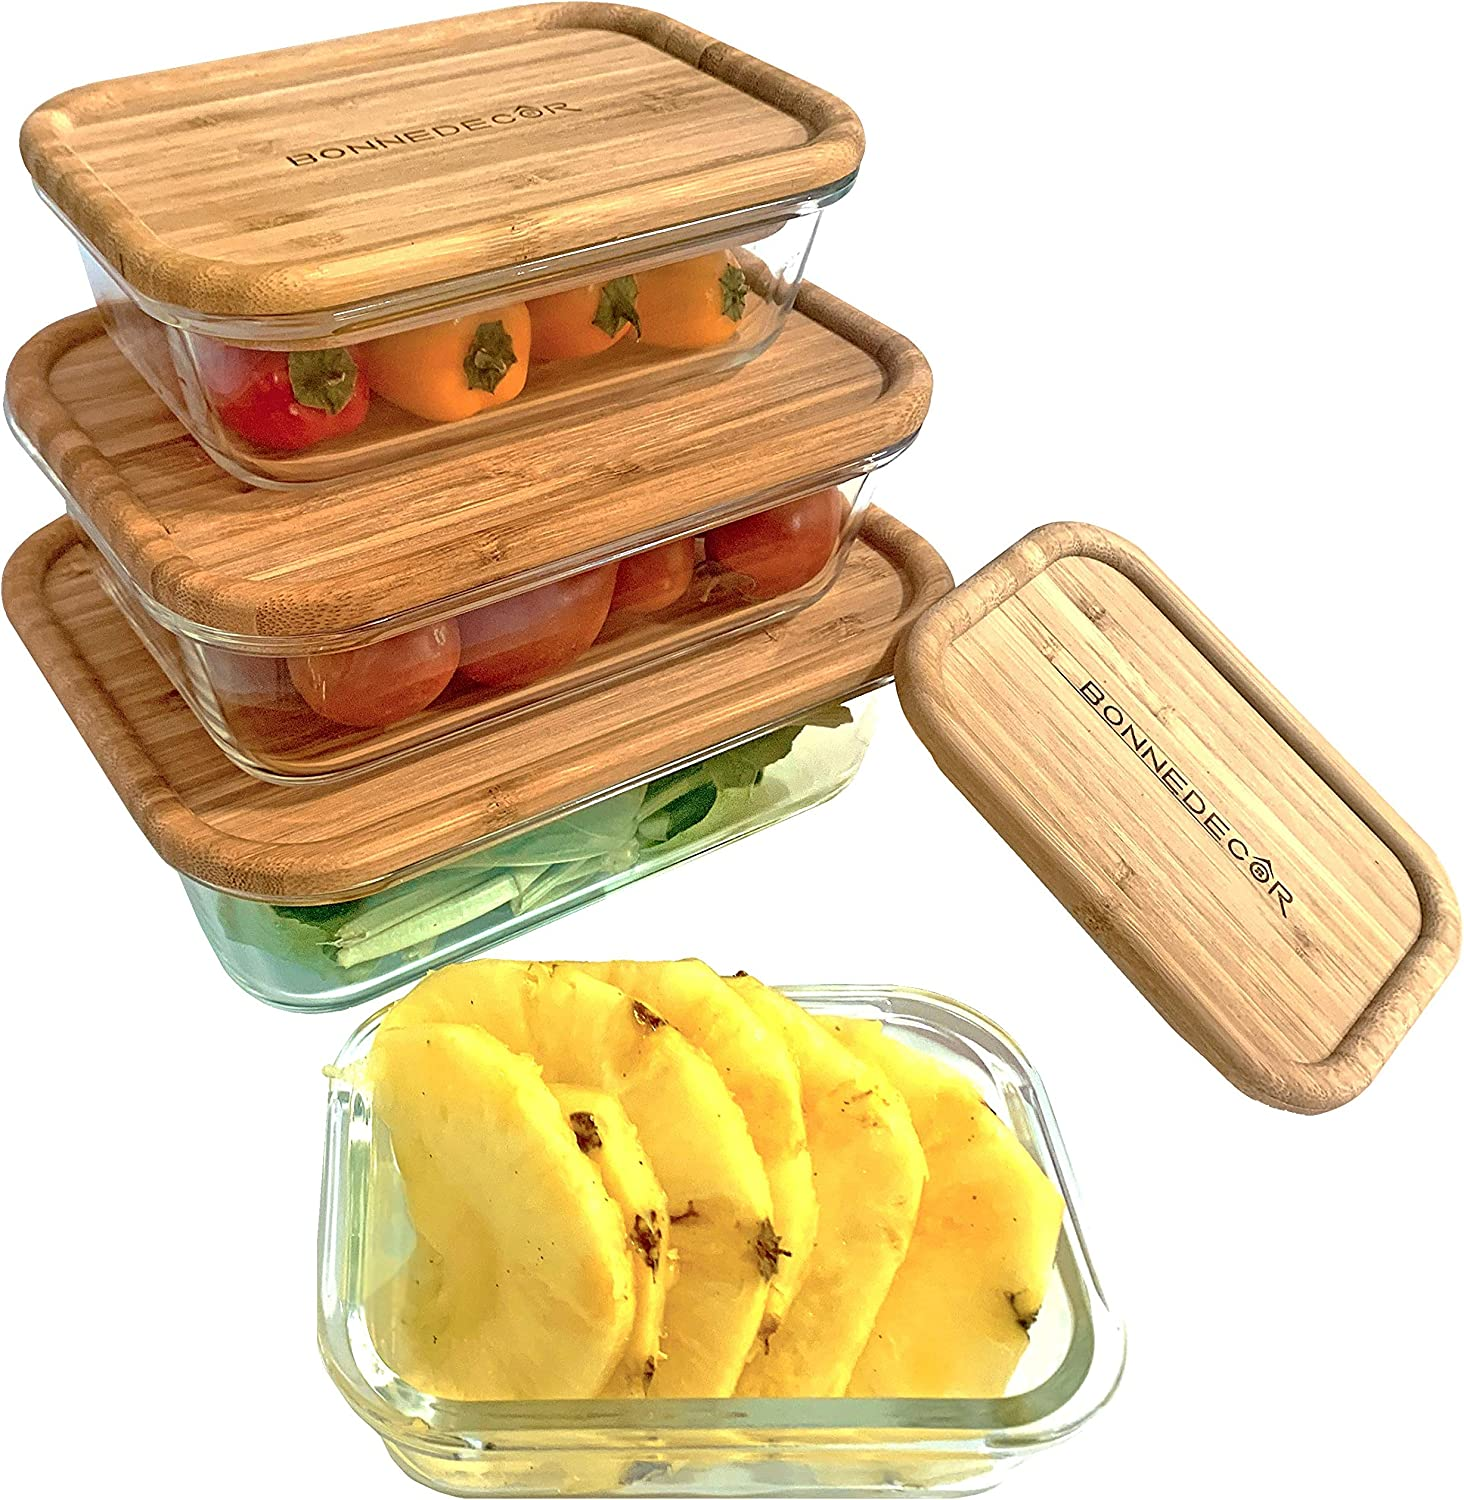 Bamboo Food Containers - Food Glass Containers with Bamboo Lids Eco-Friendly Food Storage Large And Small Boxes | Perfect For Meal Prep Food Container | Bpa-Free Kitchen Items Set Of 4 - (Mixed)